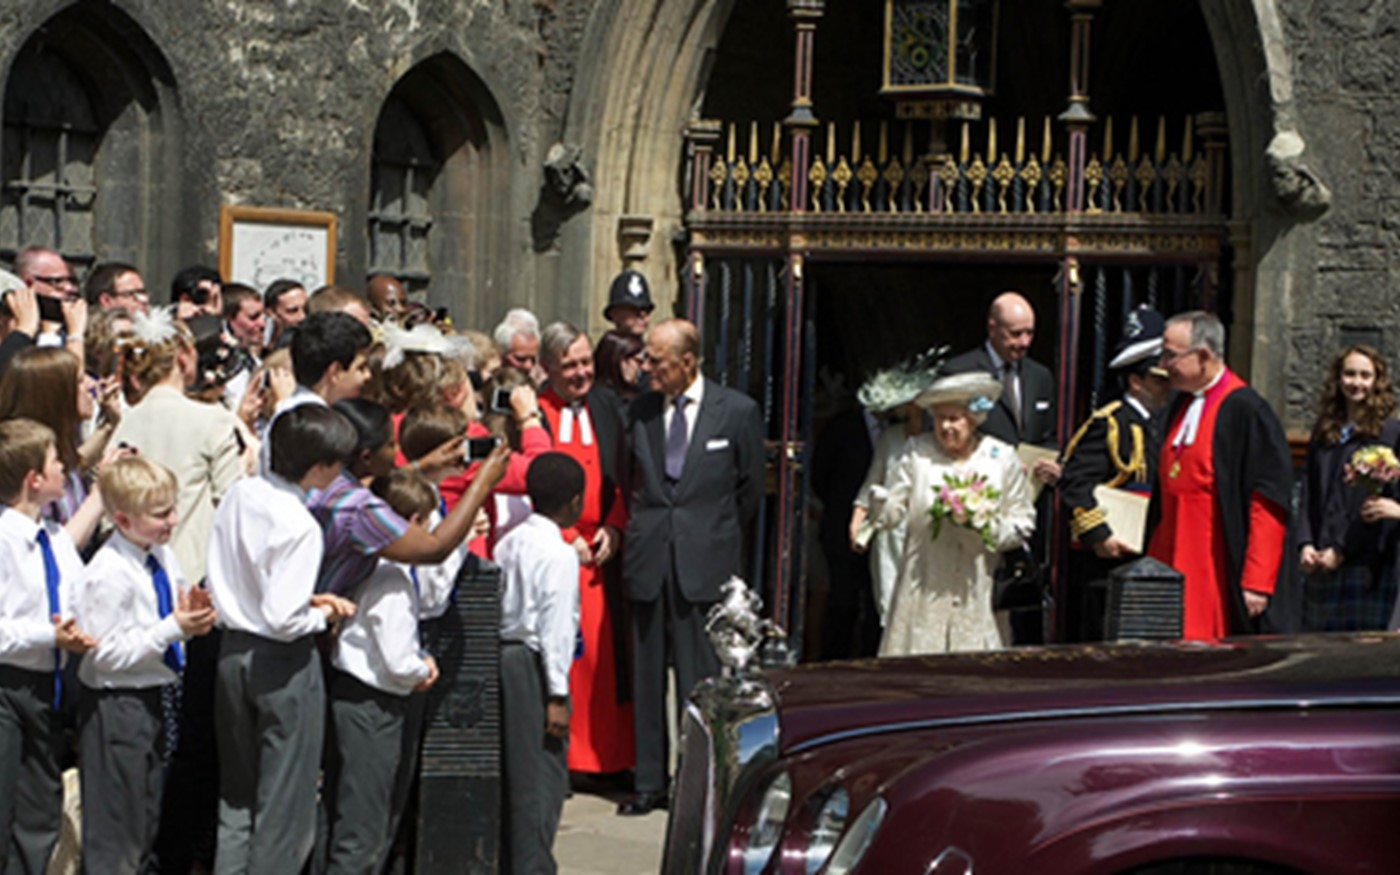 The Abbey community waves The Queen goodbye as she departs